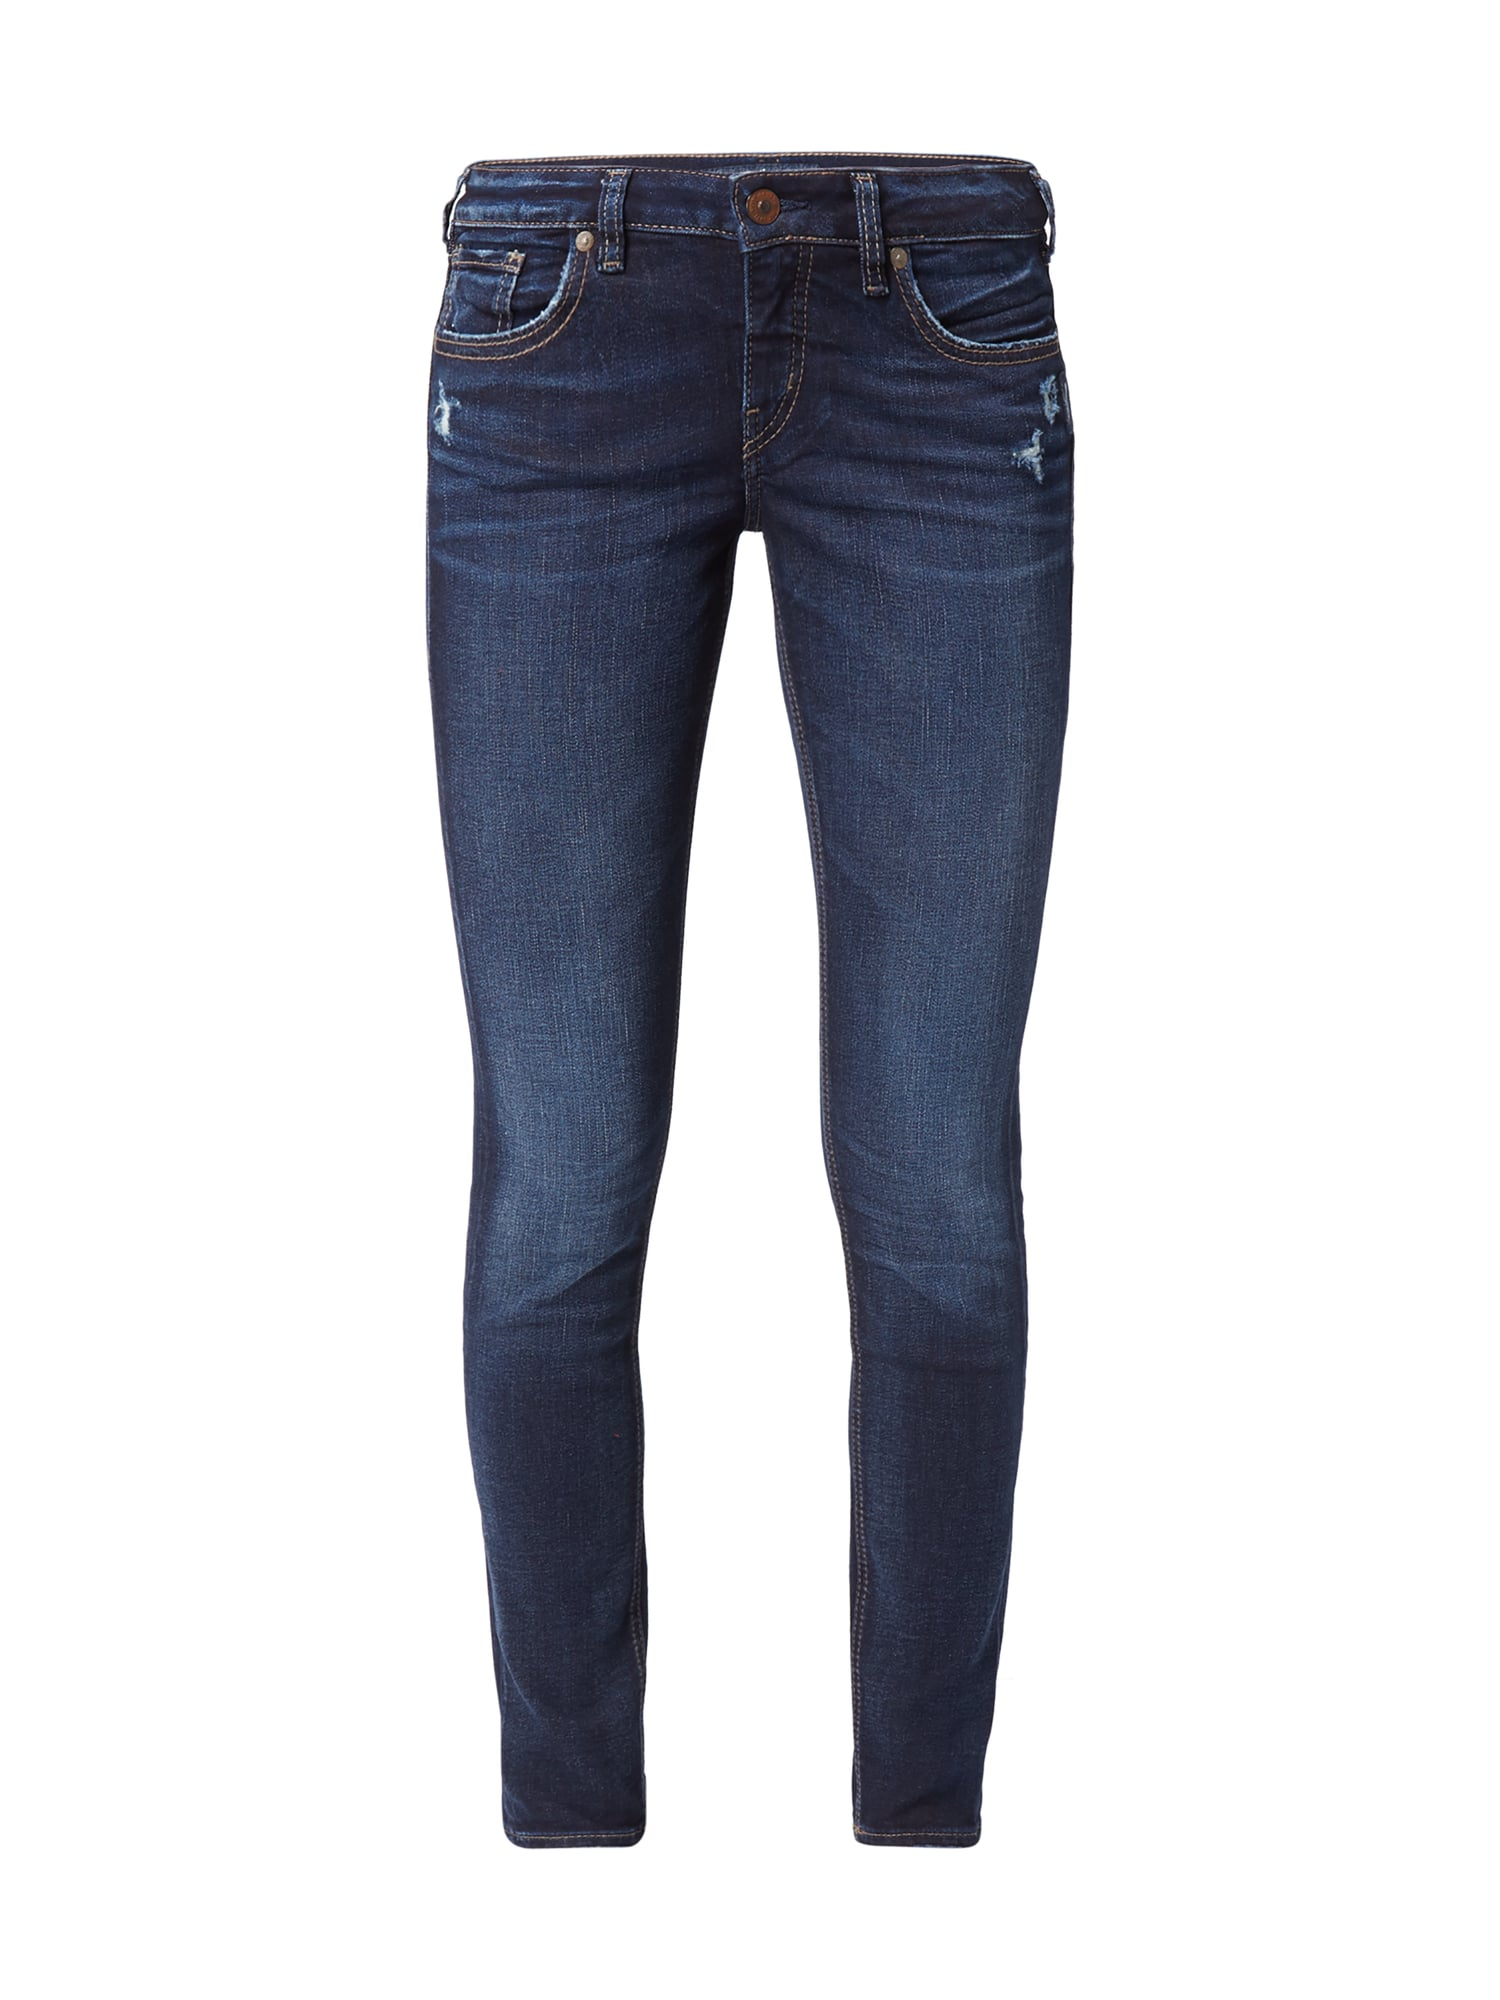 silver jeans skinny fit jeans im used look in blau t rkis online kaufen 9767815 p c online. Black Bedroom Furniture Sets. Home Design Ideas